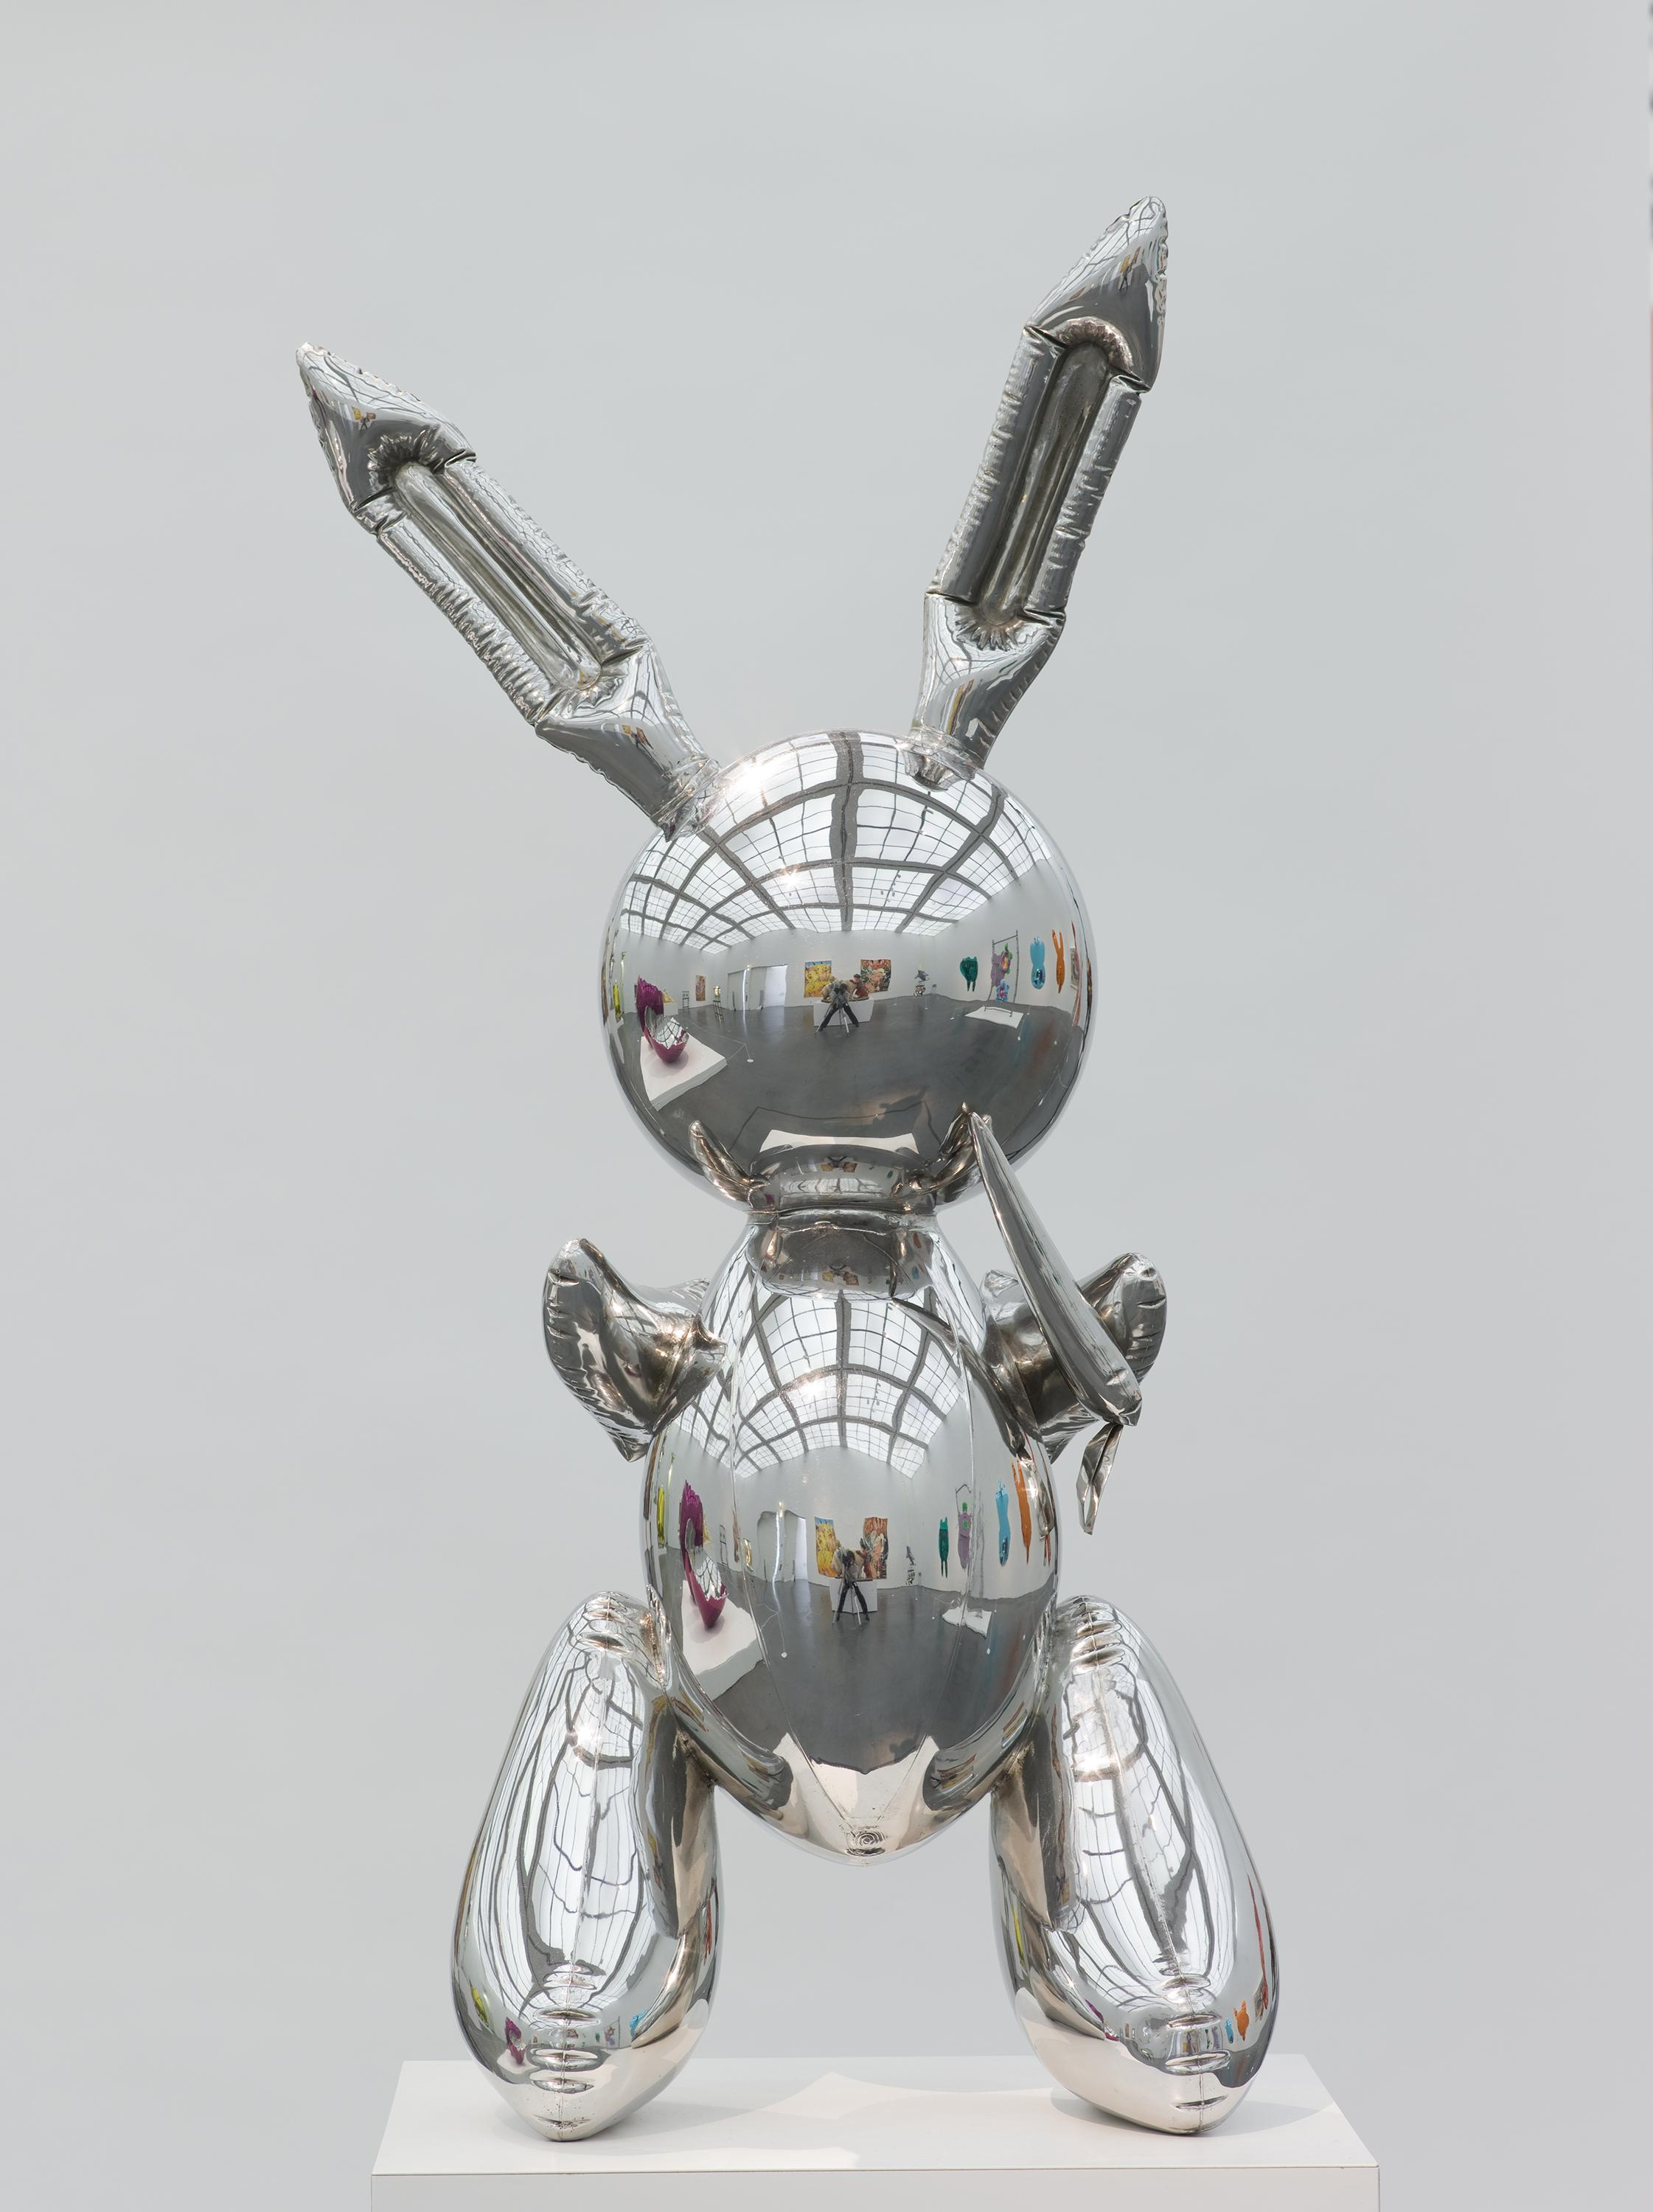 A sculpture that resembles a silver rabbit-shaped mylar balloon stands on a pedestal. A museum gallery is visible in the sculpture's reflective surface.